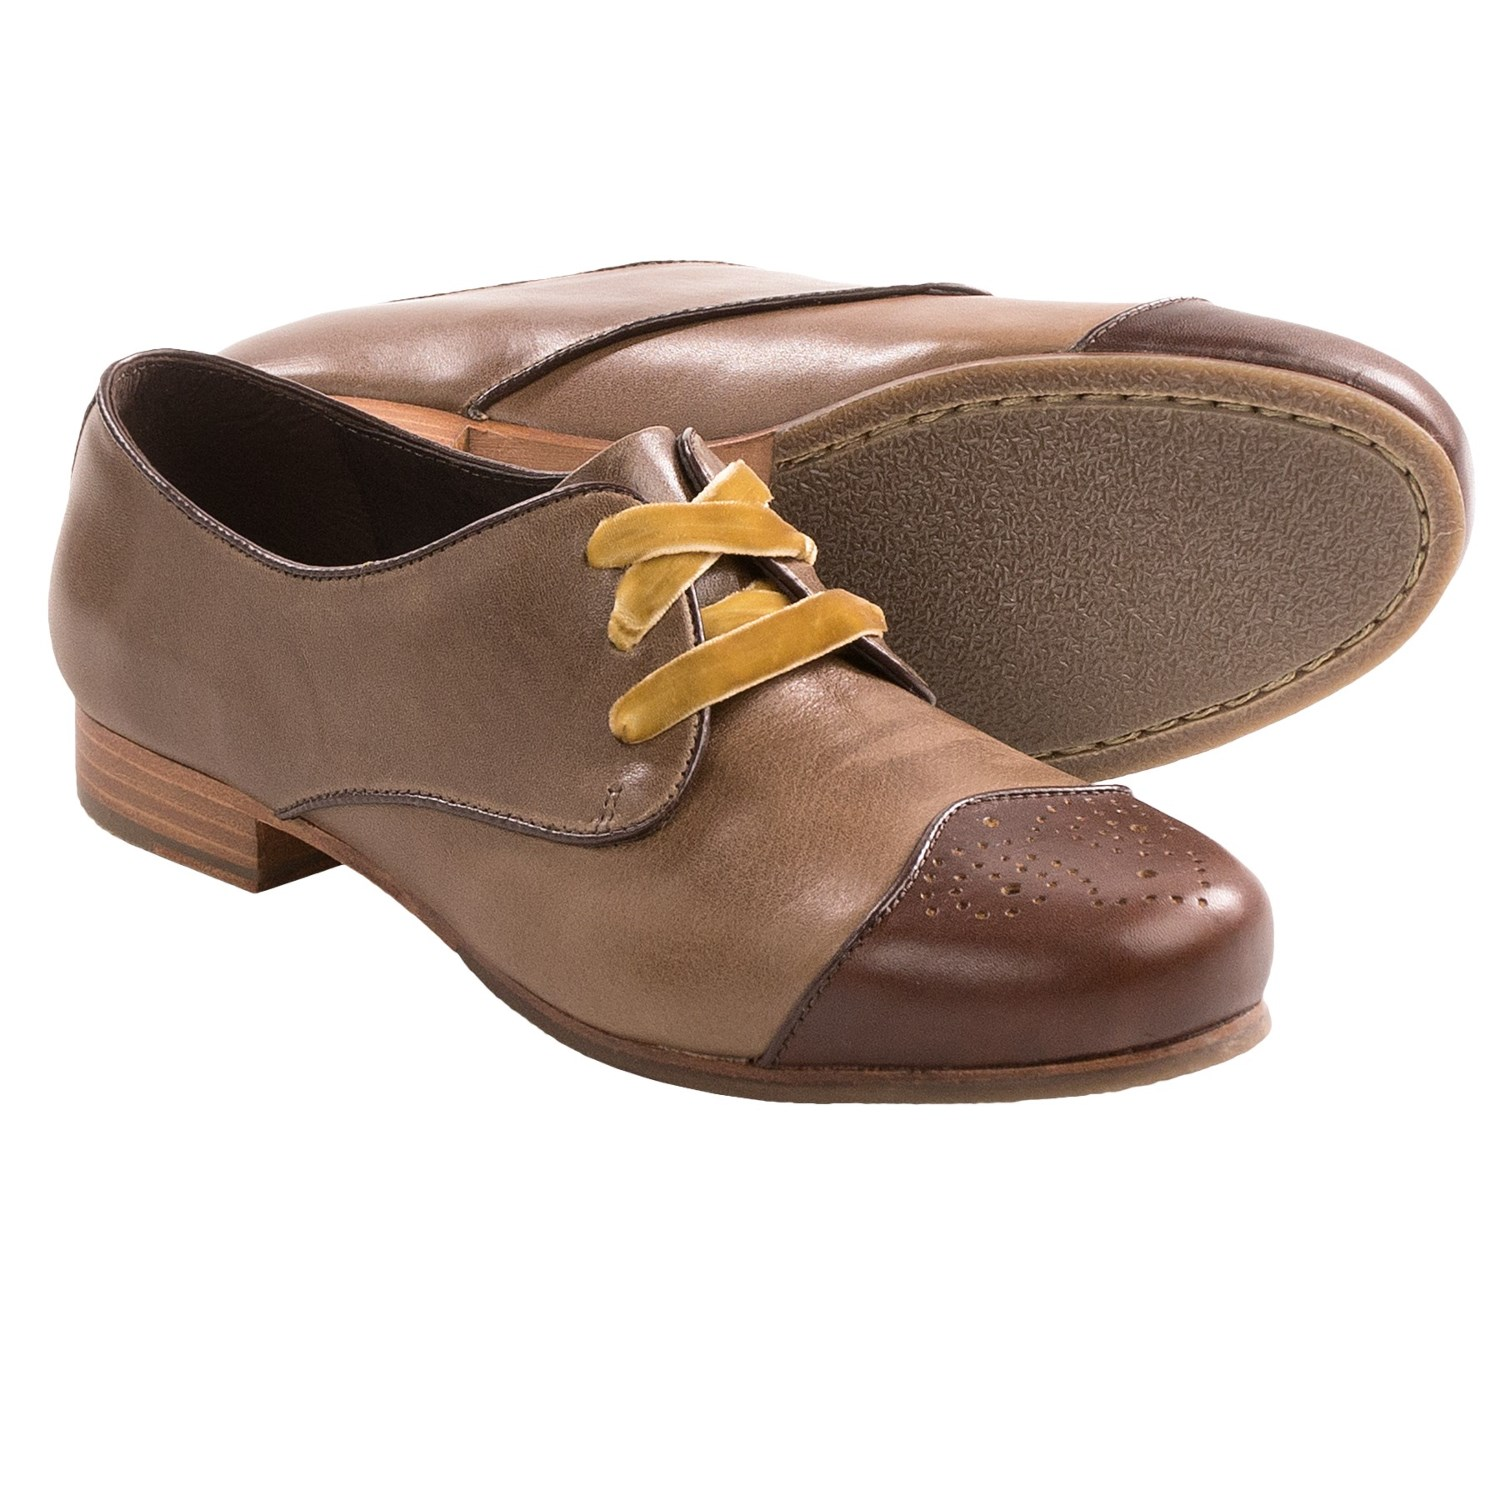 Shoes for men online   Womens leather shoes